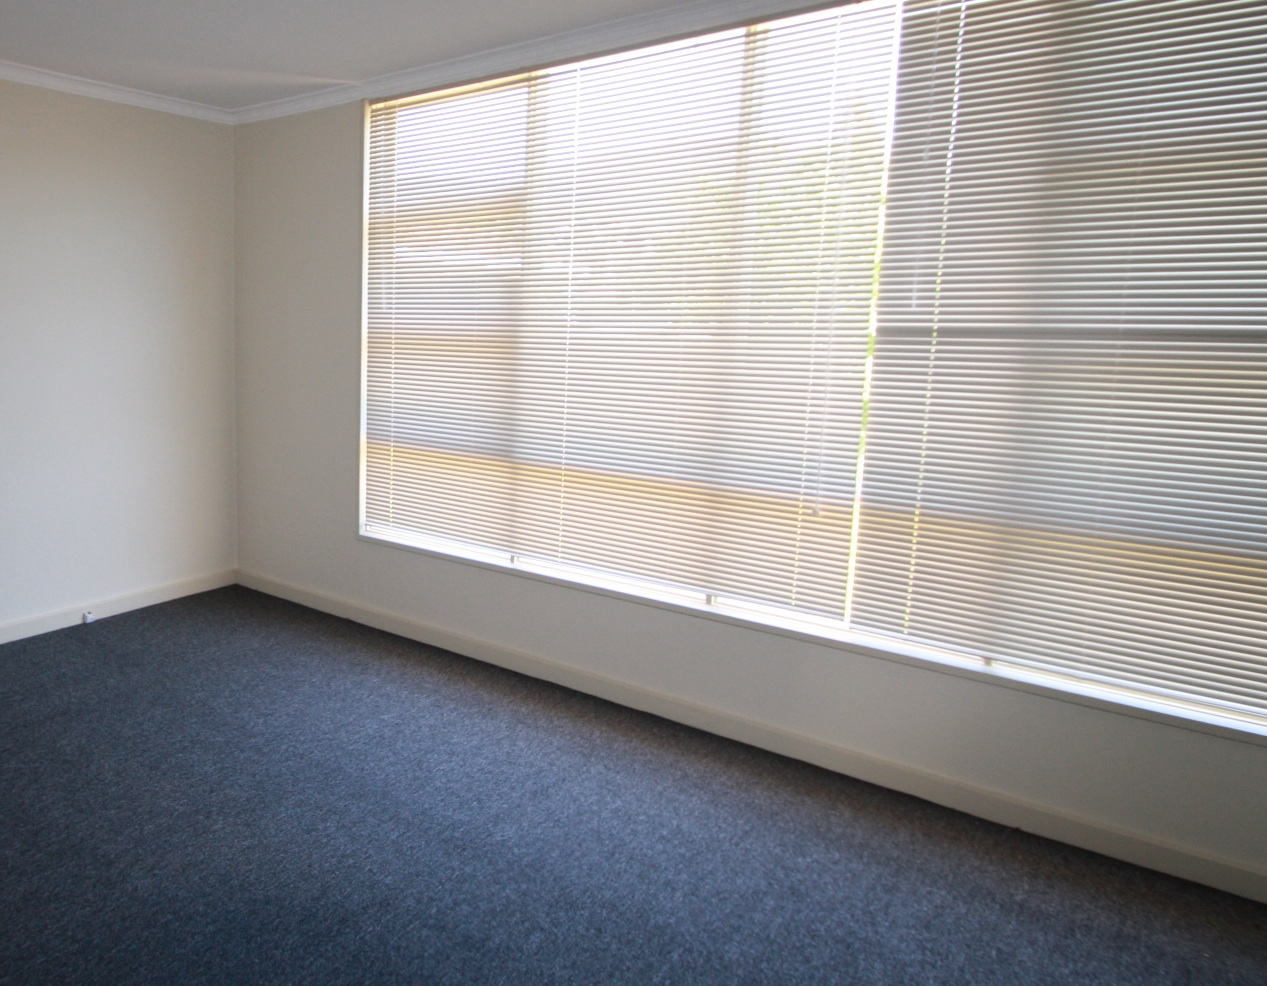 Small improvements like new blinds can make a big difference.